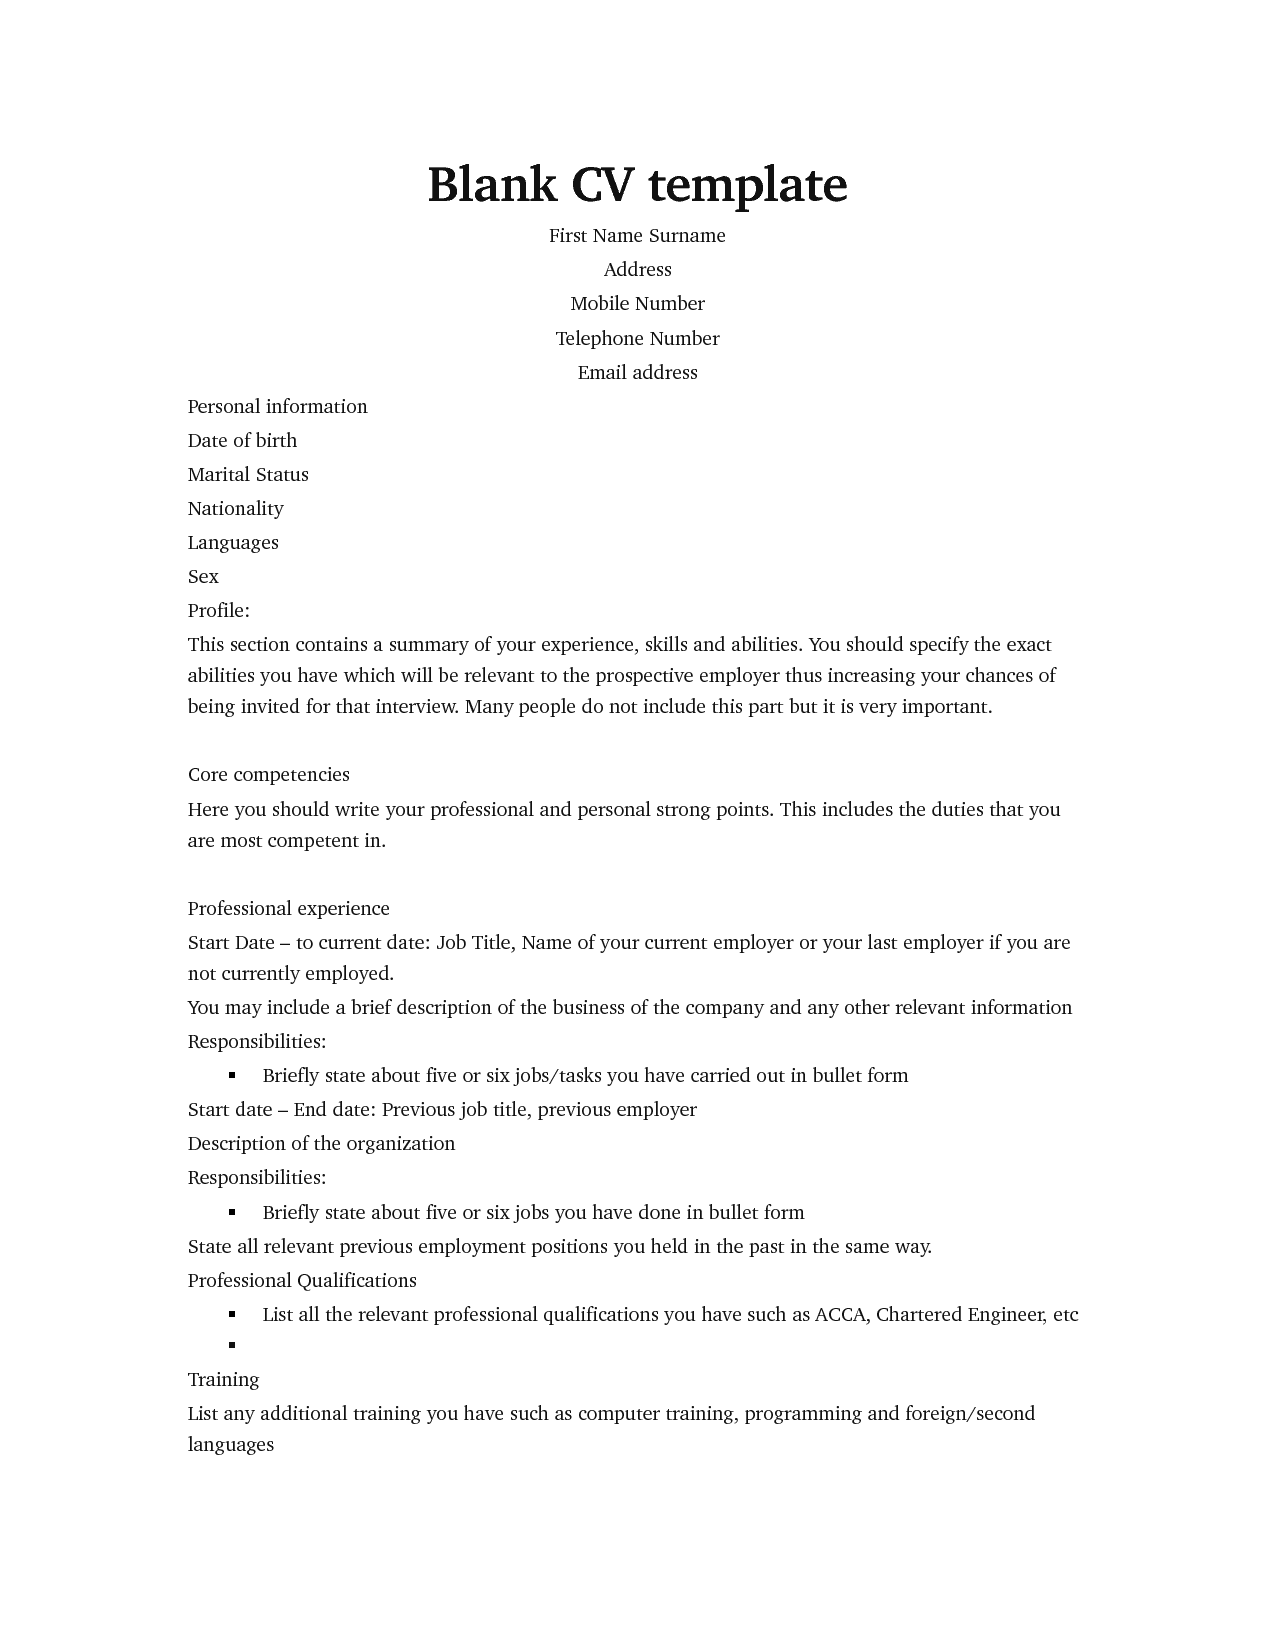 Graduate cv tips and cv template uk example for students cv template for graduates yelopaper Images